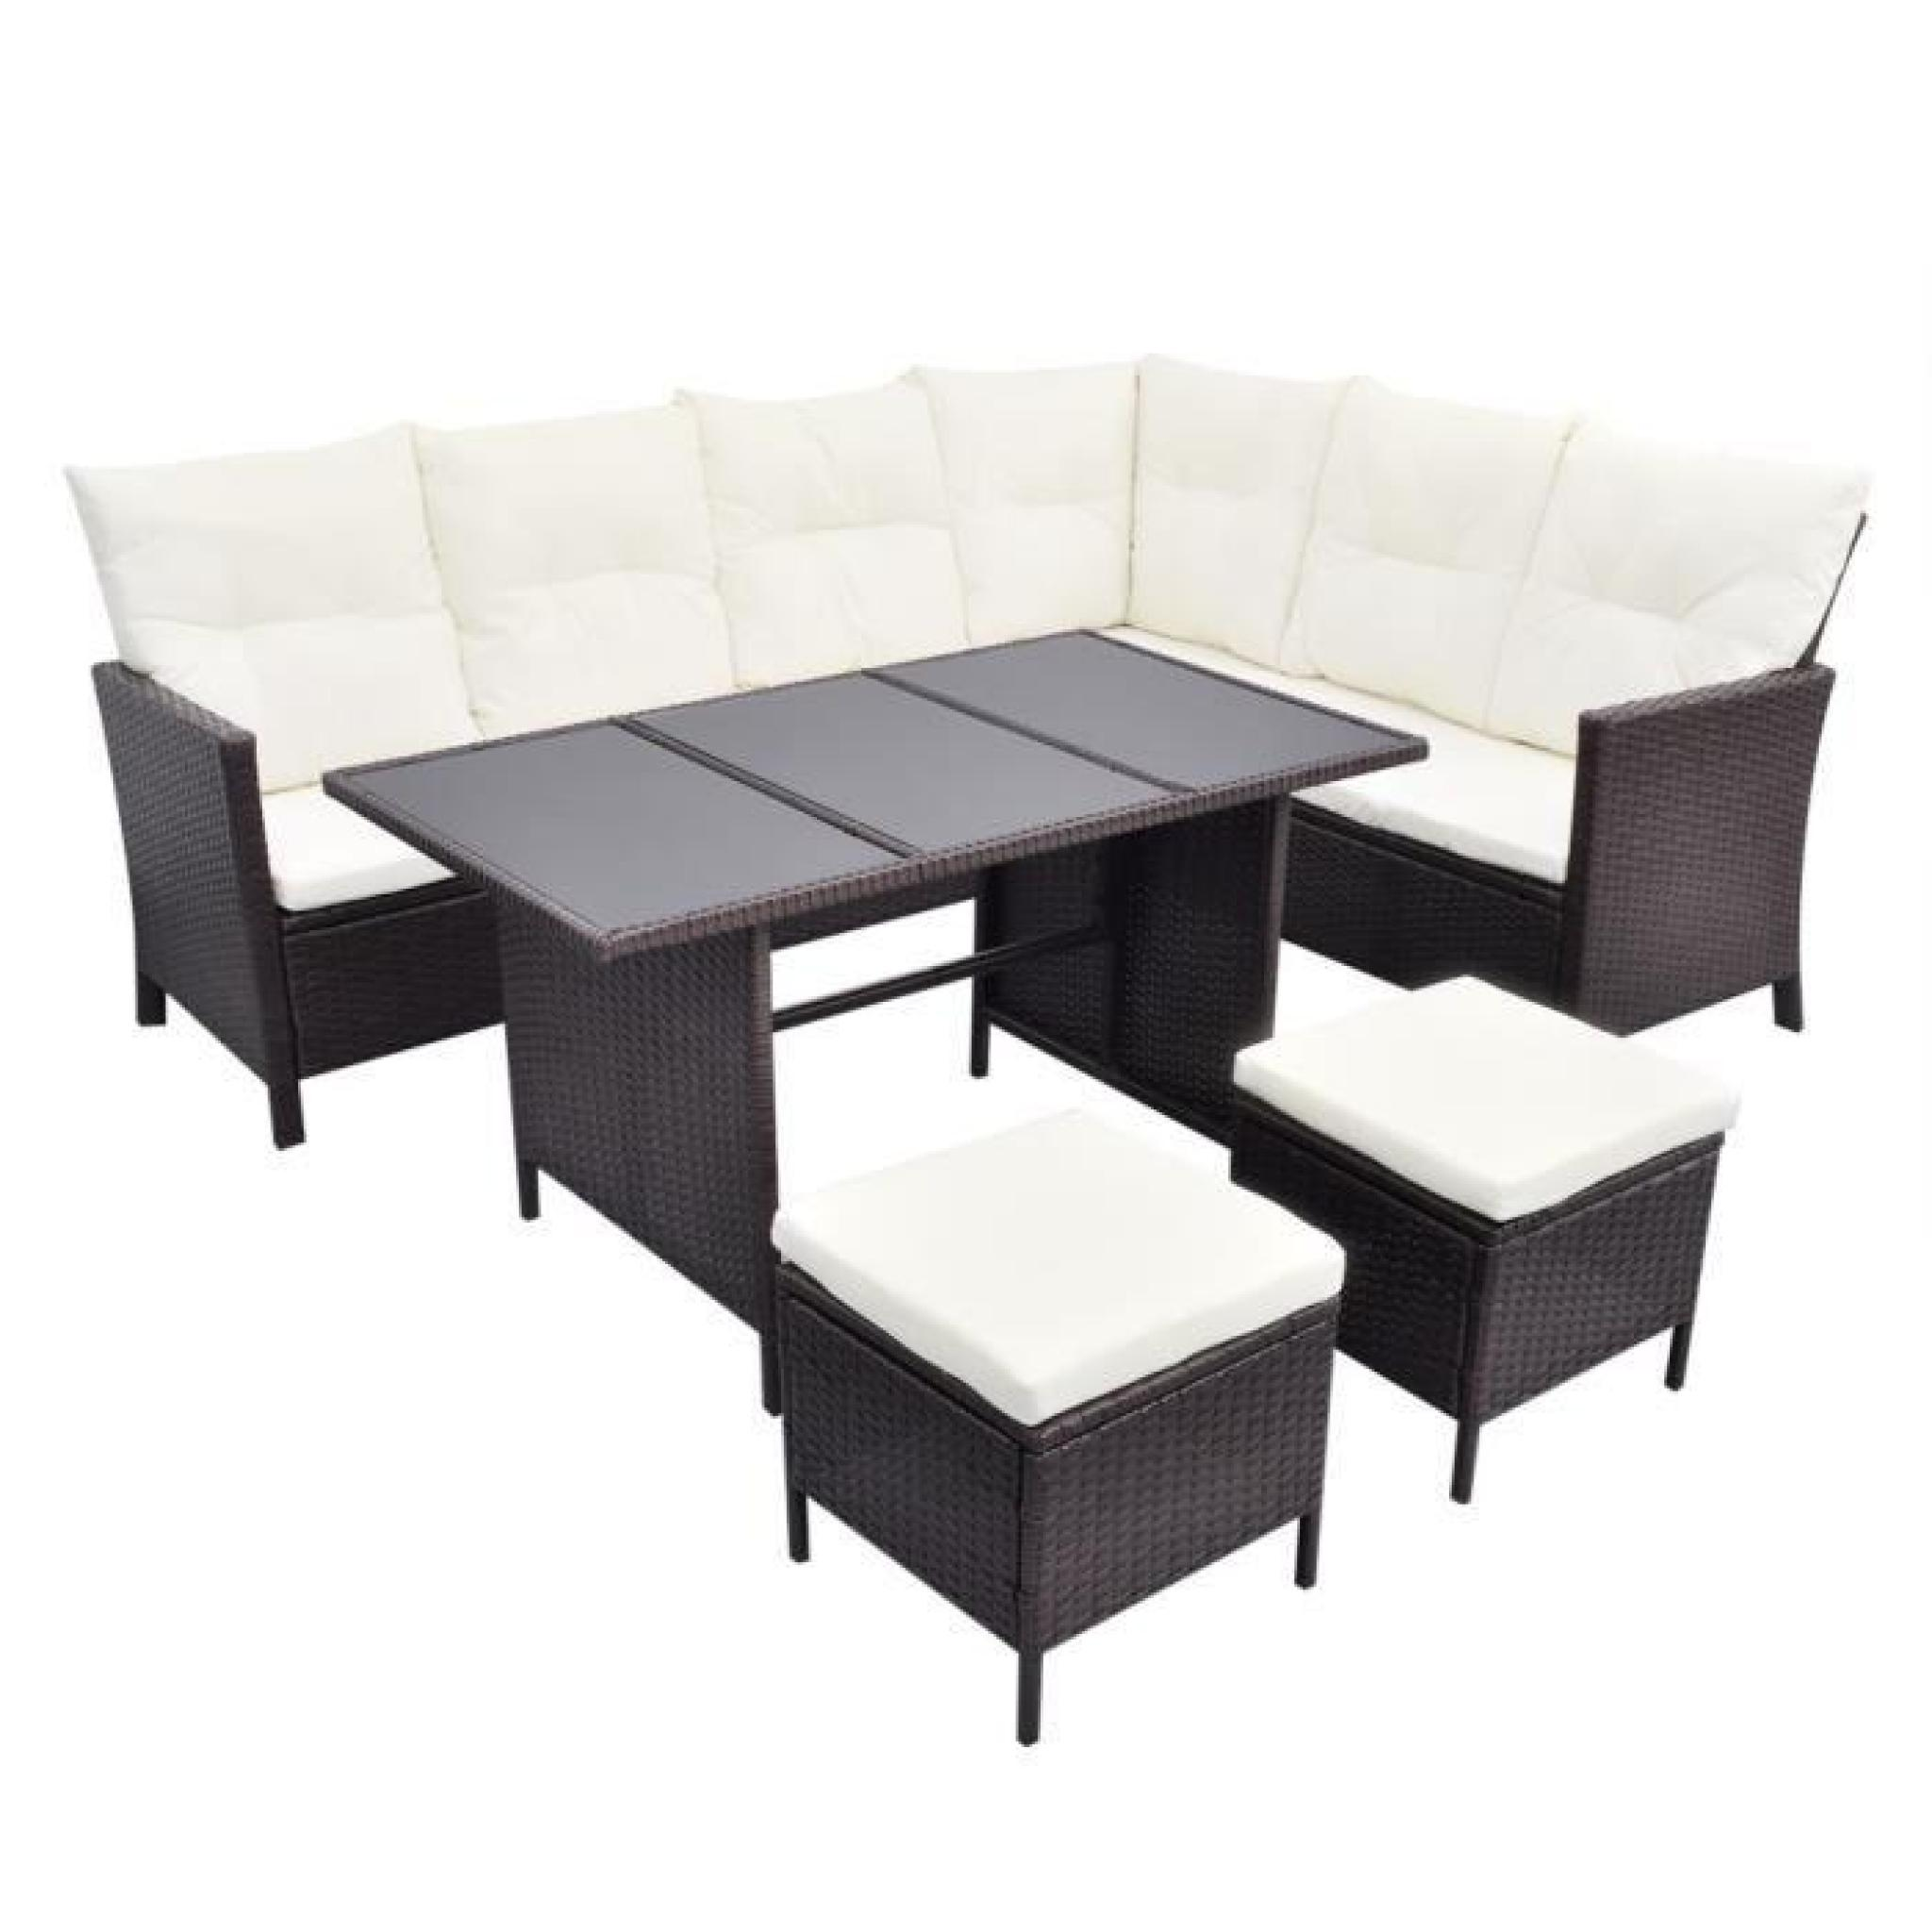 salon de jardin en polyrotin marron 8 personnes achat. Black Bedroom Furniture Sets. Home Design Ideas